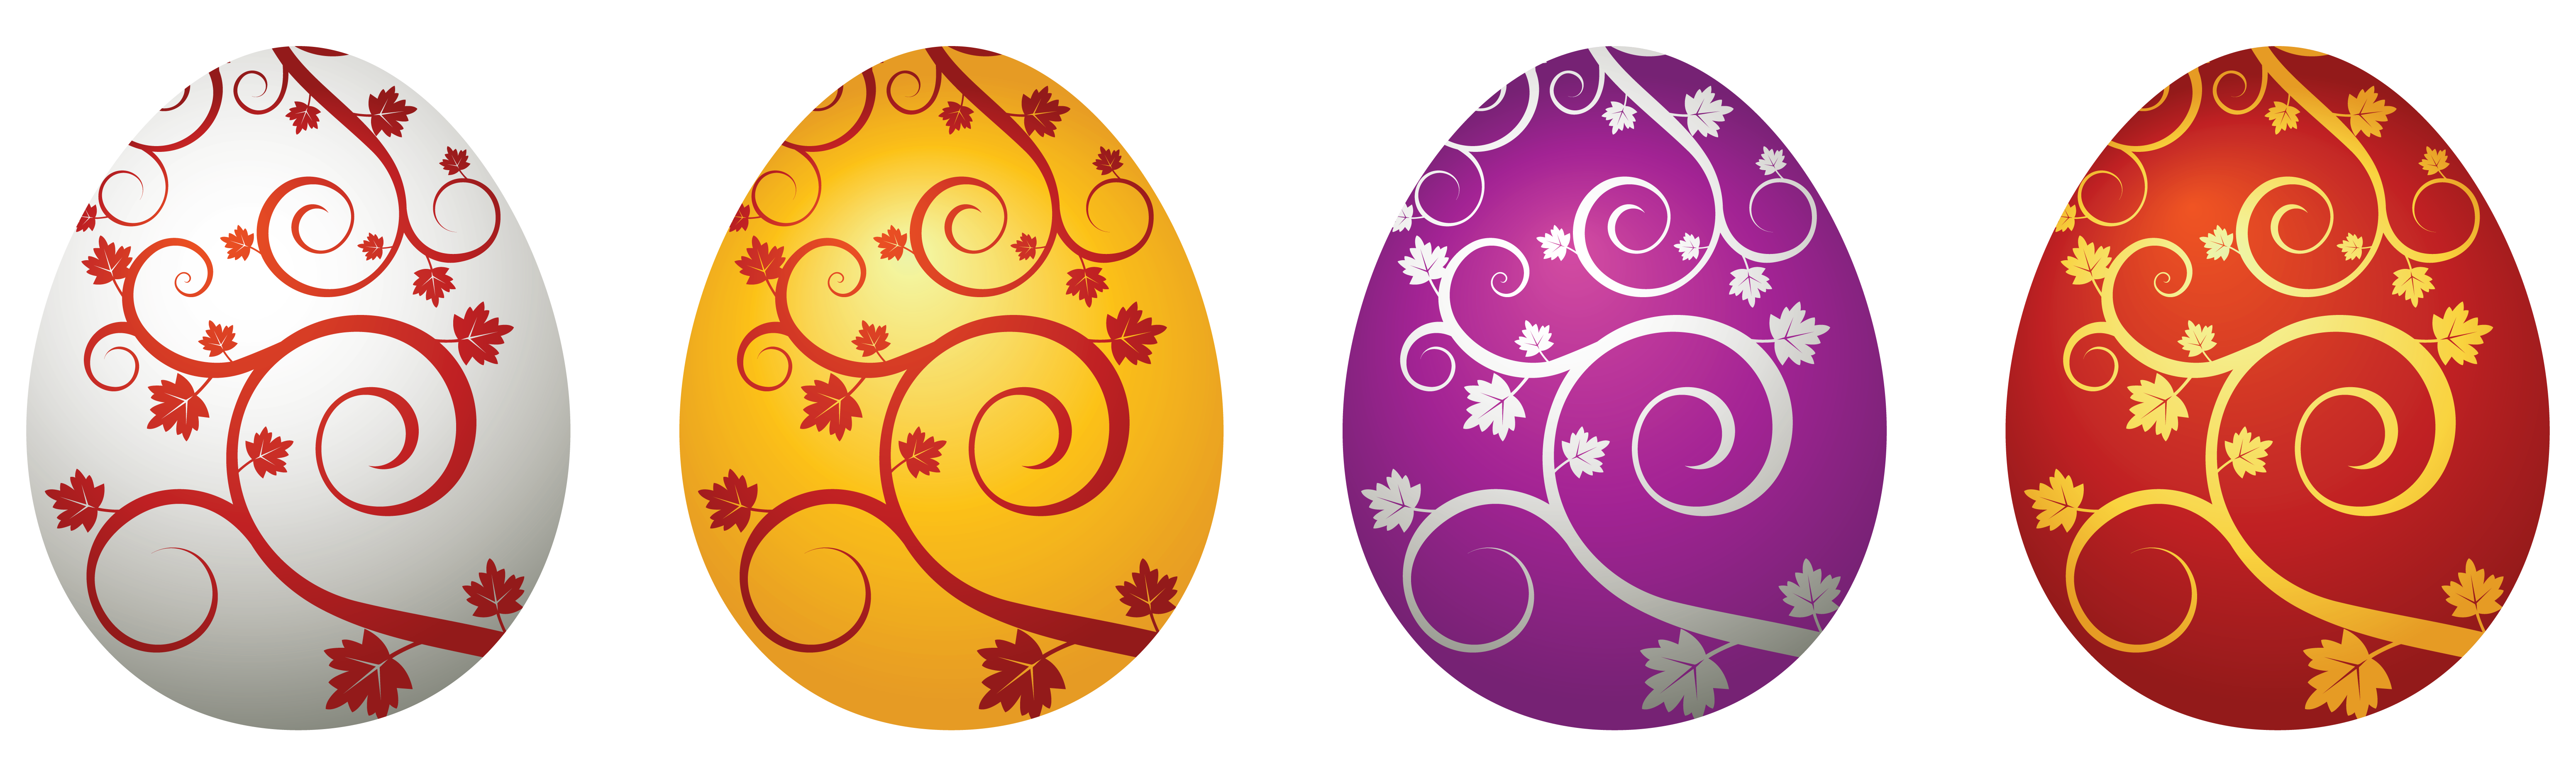 Easter Eggs Decorative PNG Clipart Picture.